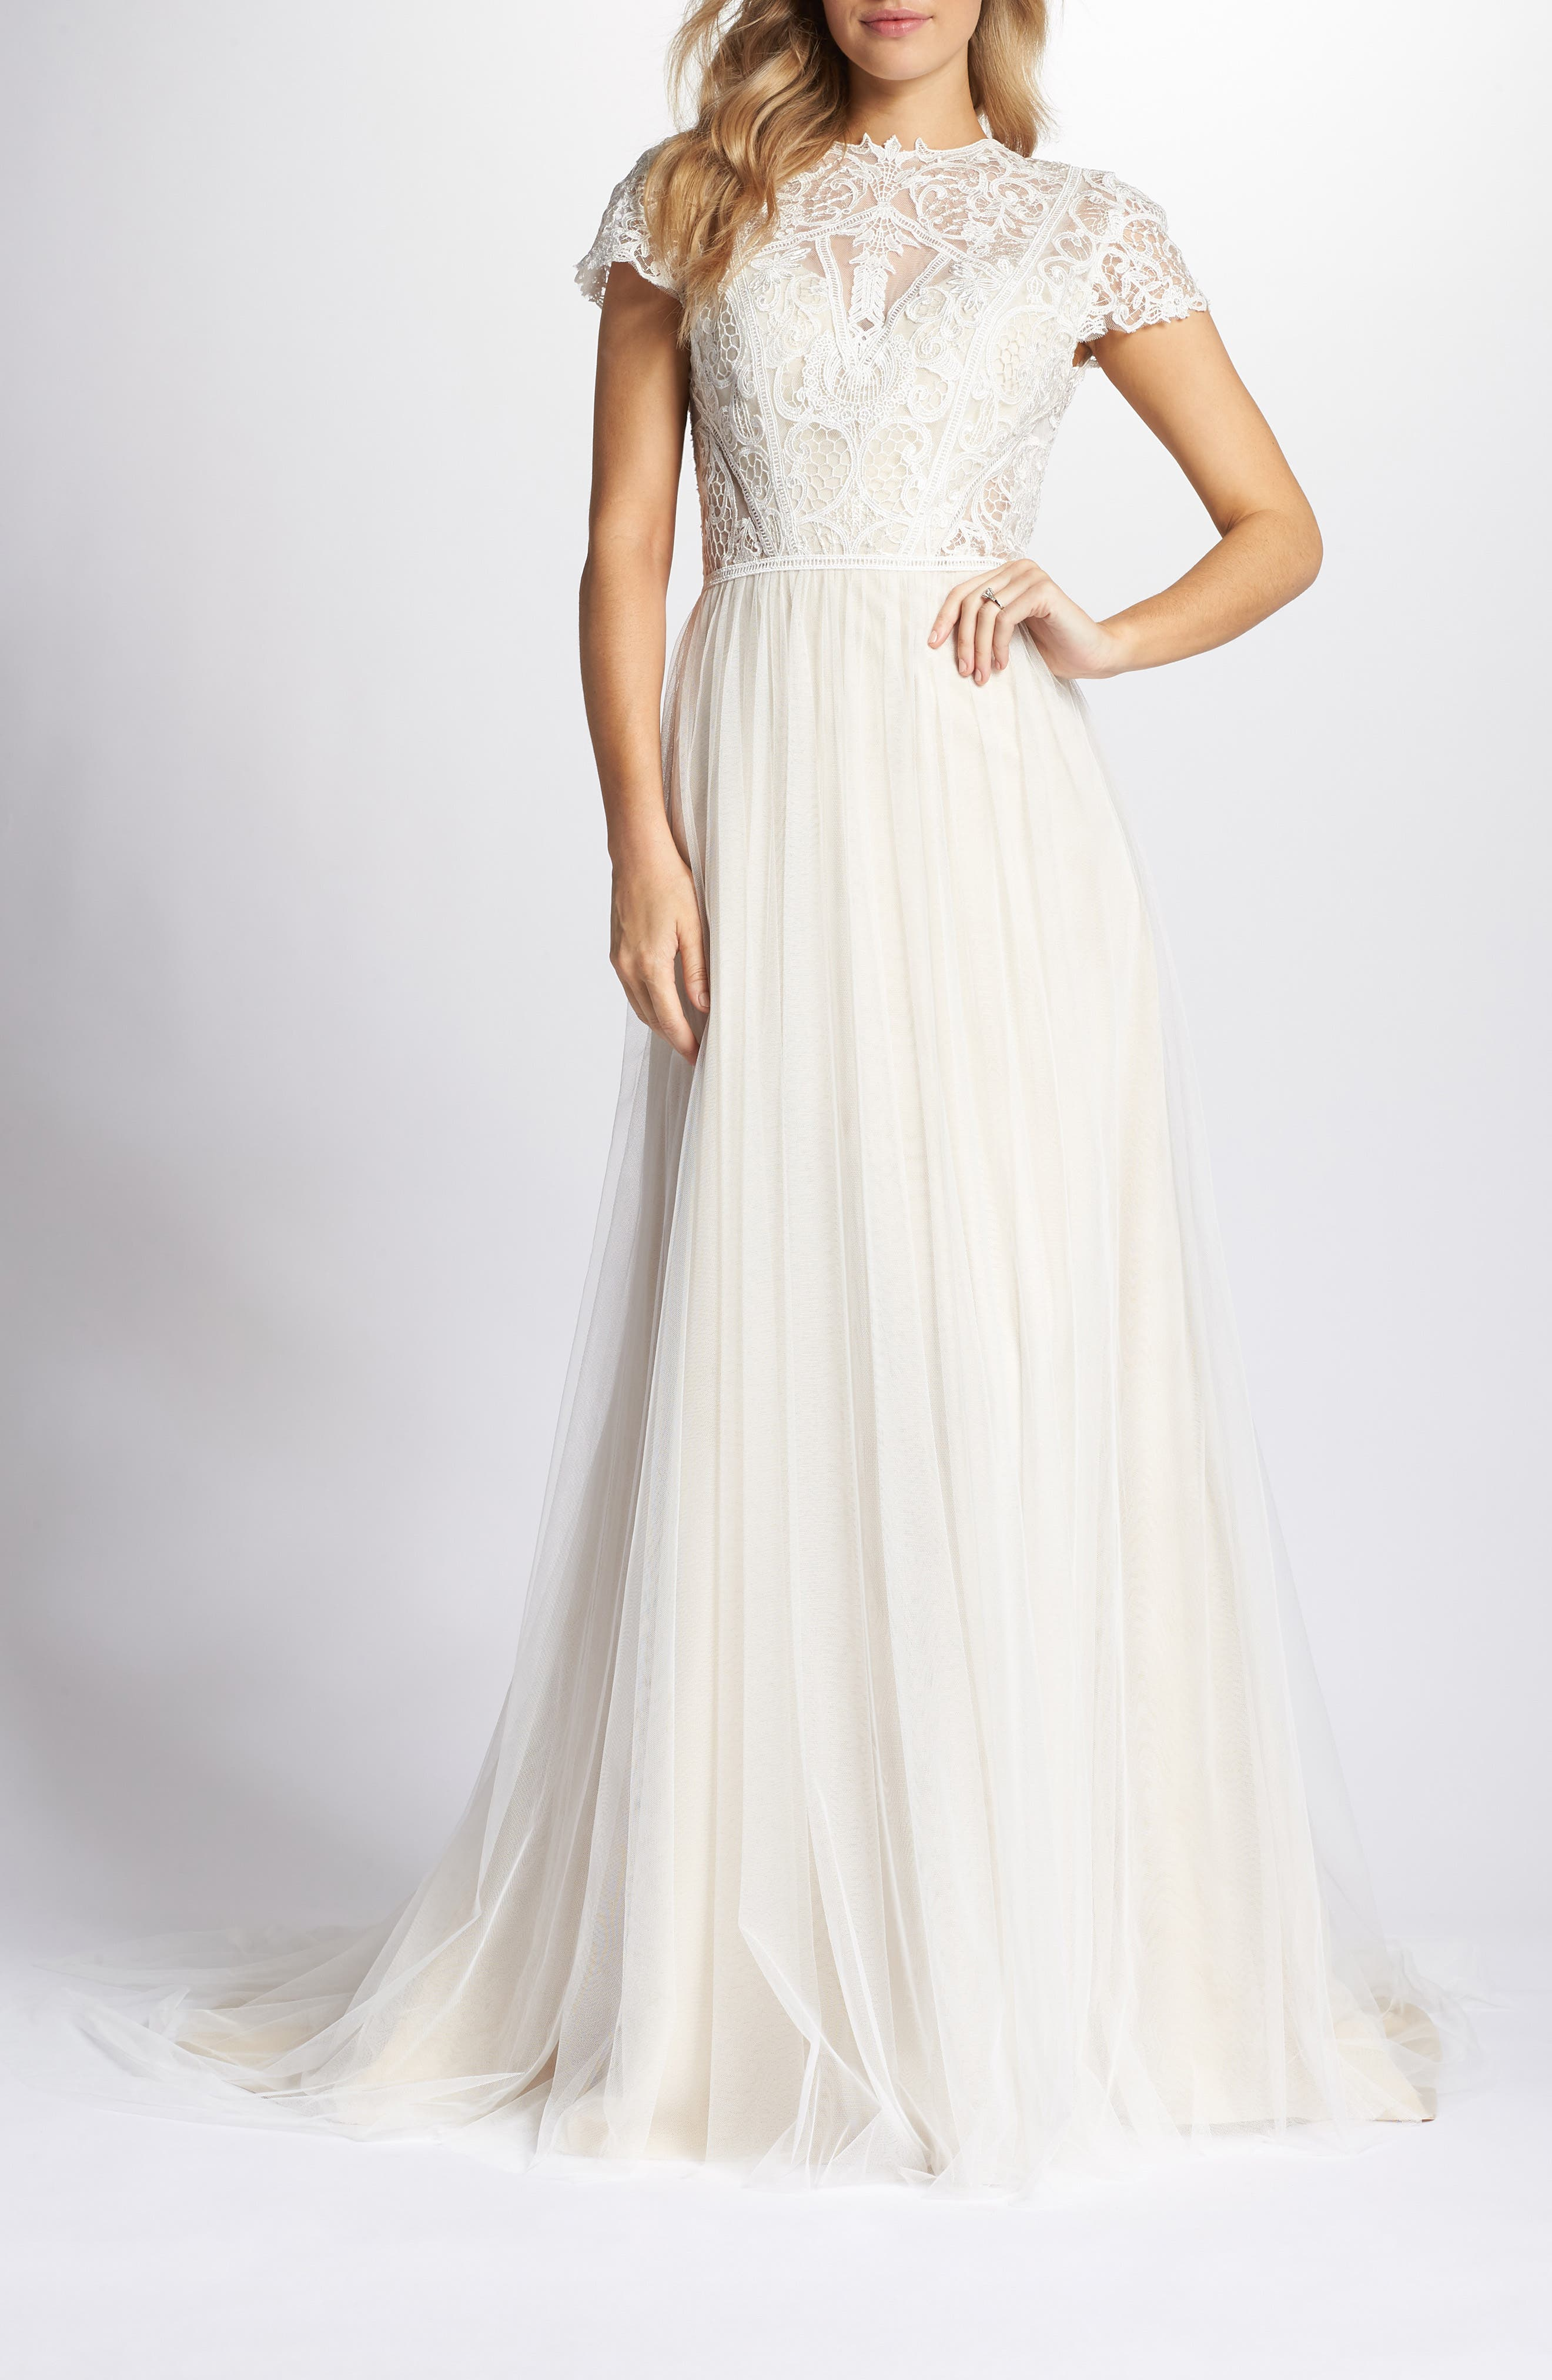 Lace & Tulle A-Line Gown,                             Main thumbnail 1, color,                             Ivory/Cashmere